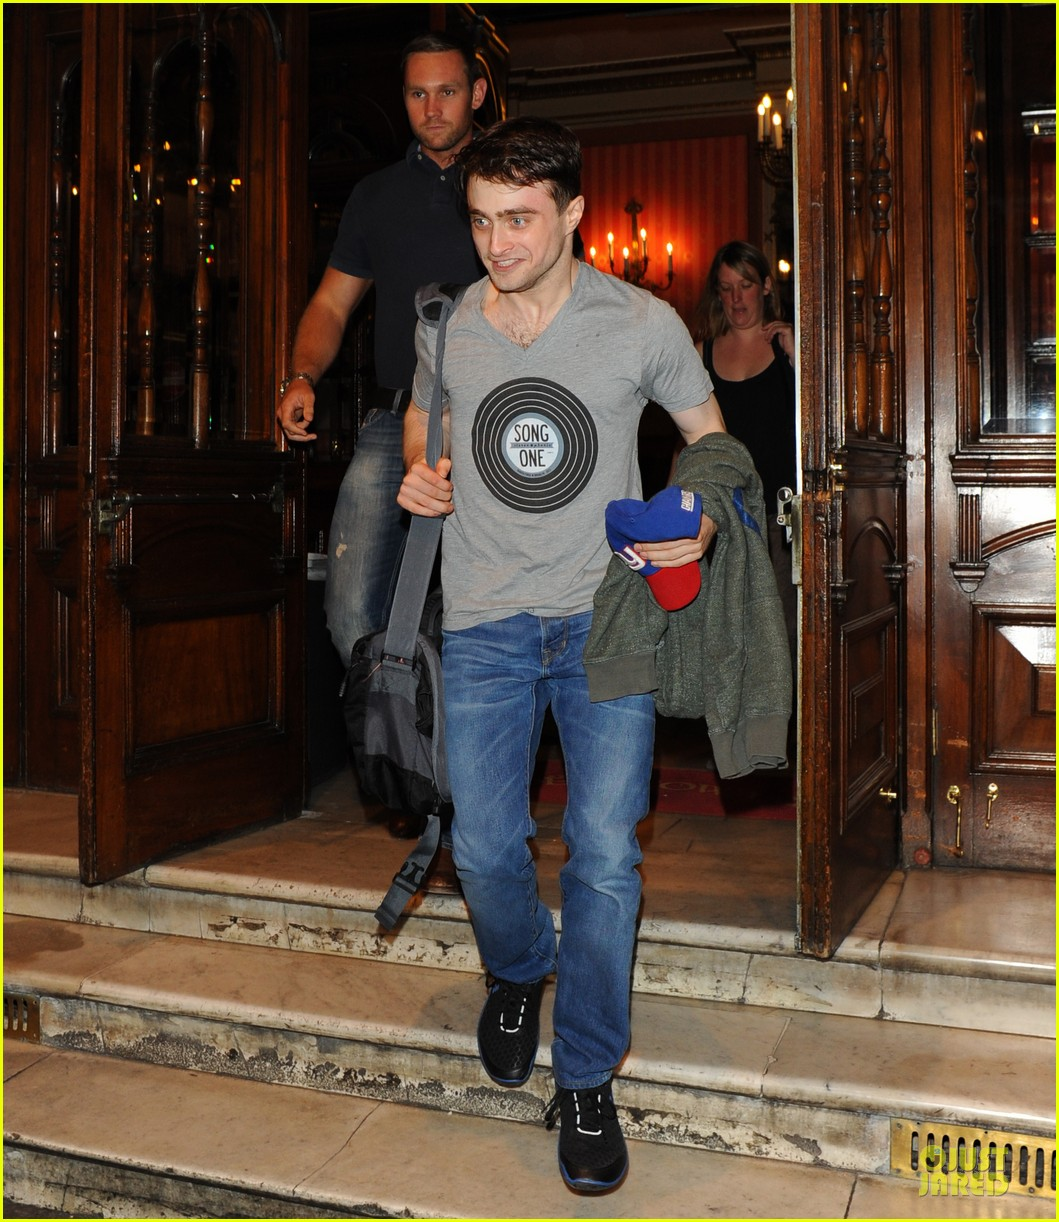 Full Sized Photo of daniel radcliffe supports song one at ... Daniel Radcliffe